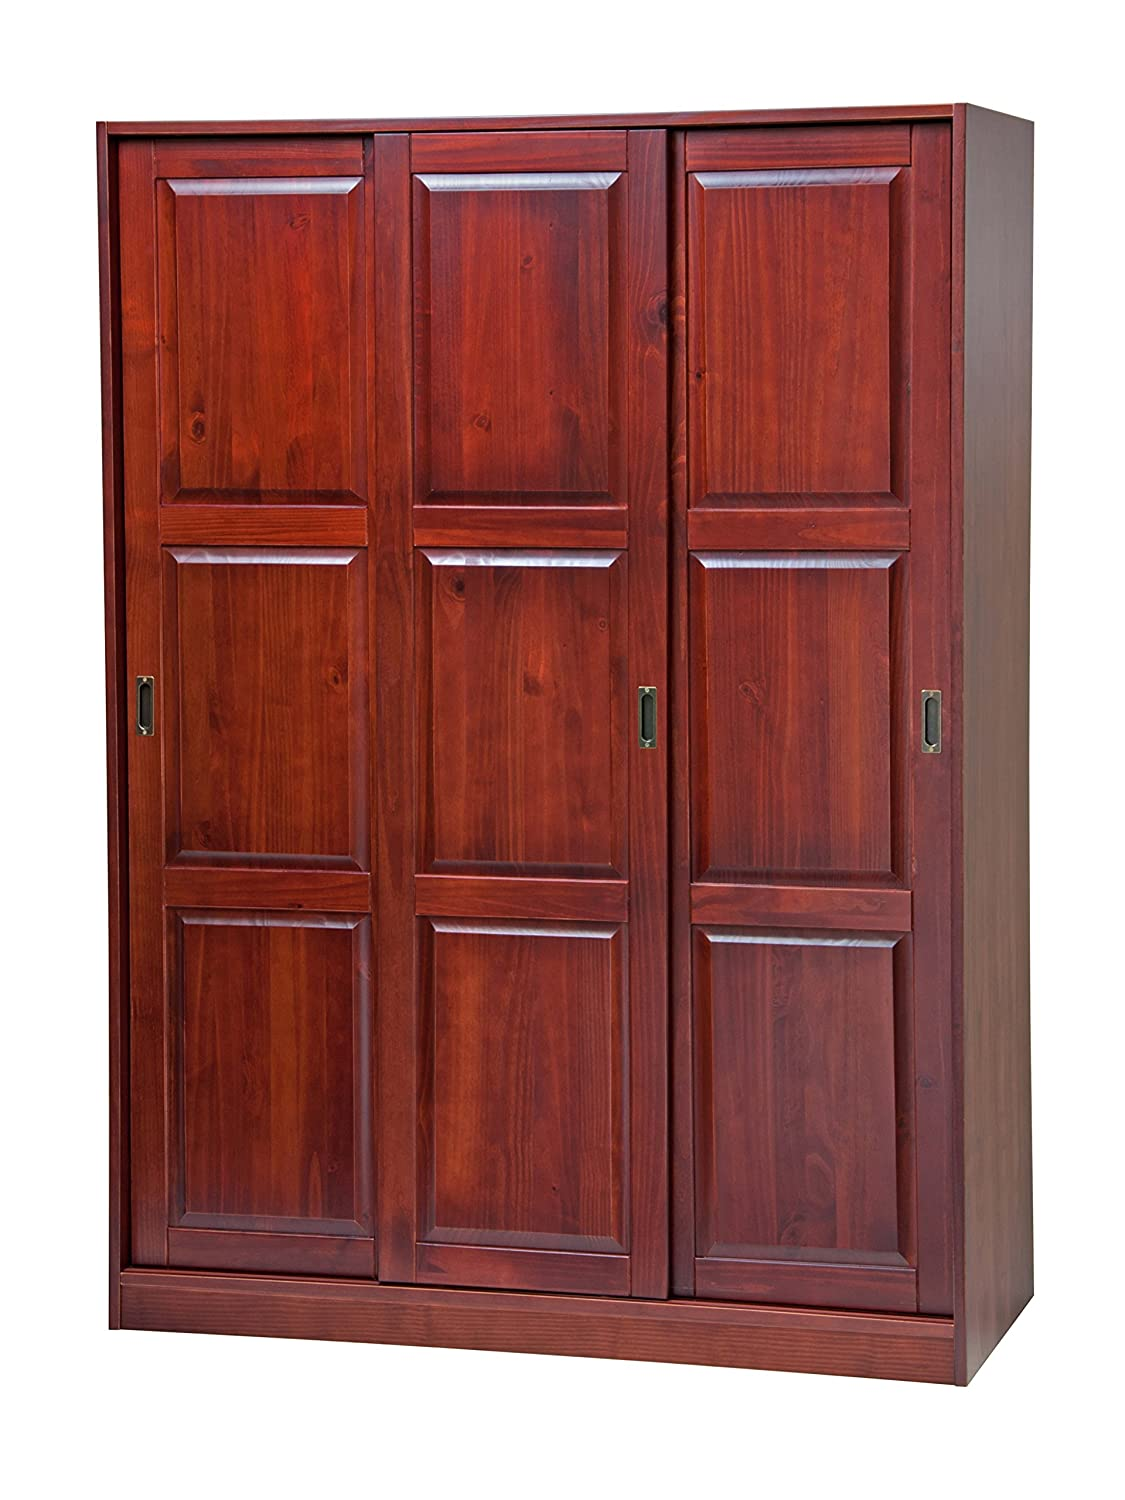 100% Solid Wood 3-Sliding Door Wardrobe/Armoire/Closet/Mudroom Storage by Palace Imports 5676 Java, 52' w x 72' h x 22.5' d. 1 Large/4 Small Shelves, 1 Rod Included. Extra Shelves Sold Separately 52 w x 72 h x 22.5 d. 1 Large/4 Small Shelves